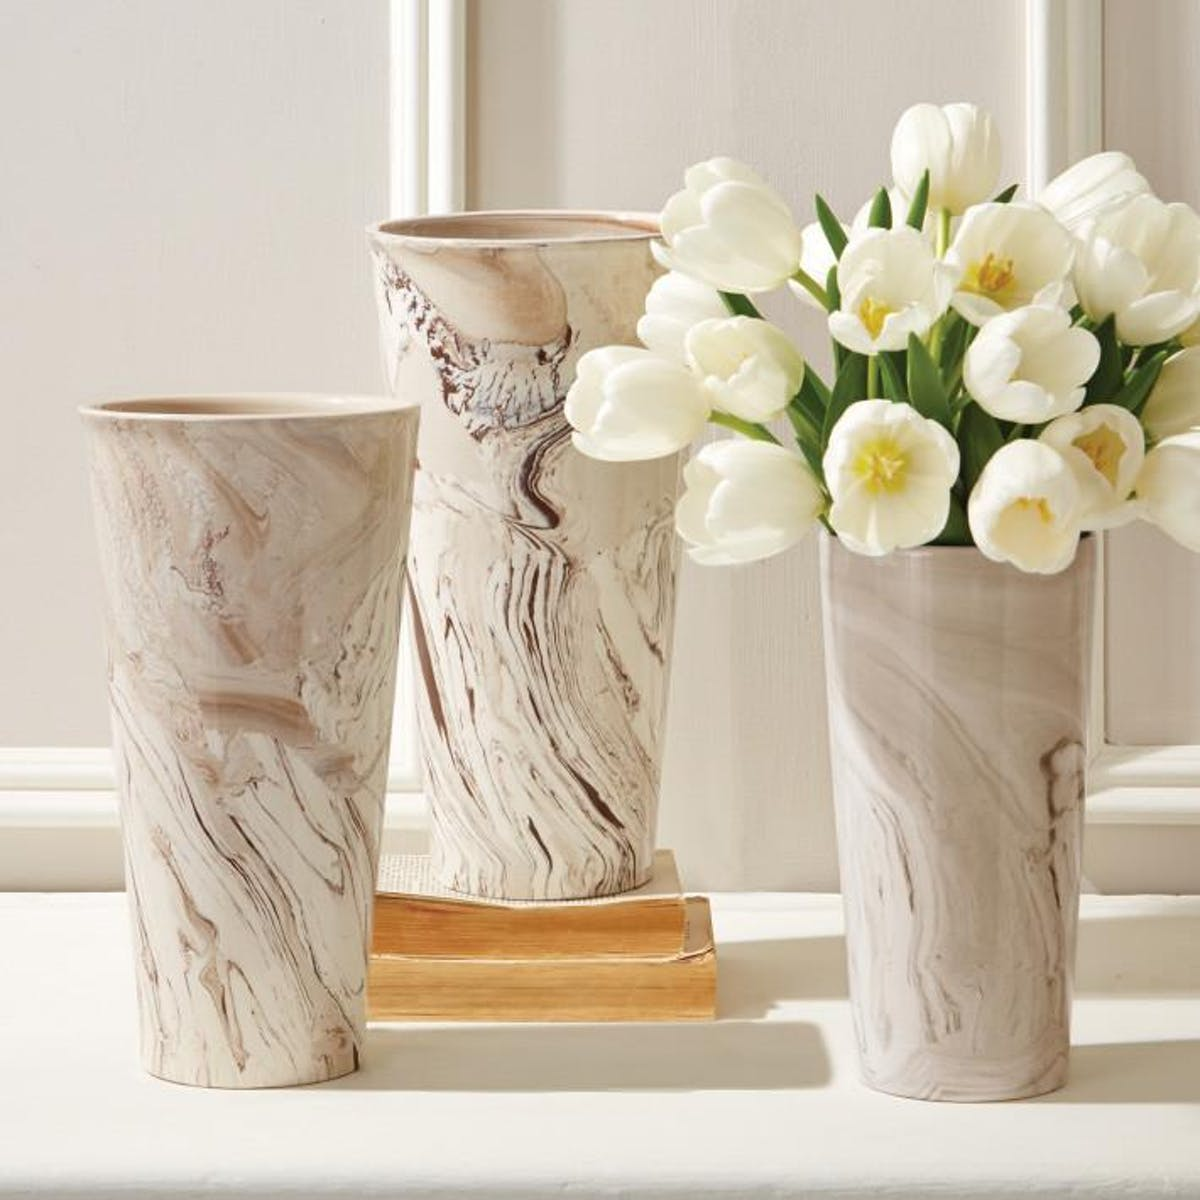 Tozai Tapered Marbleized Vases, TH-Tozai Home, Putti Fine Furnishings